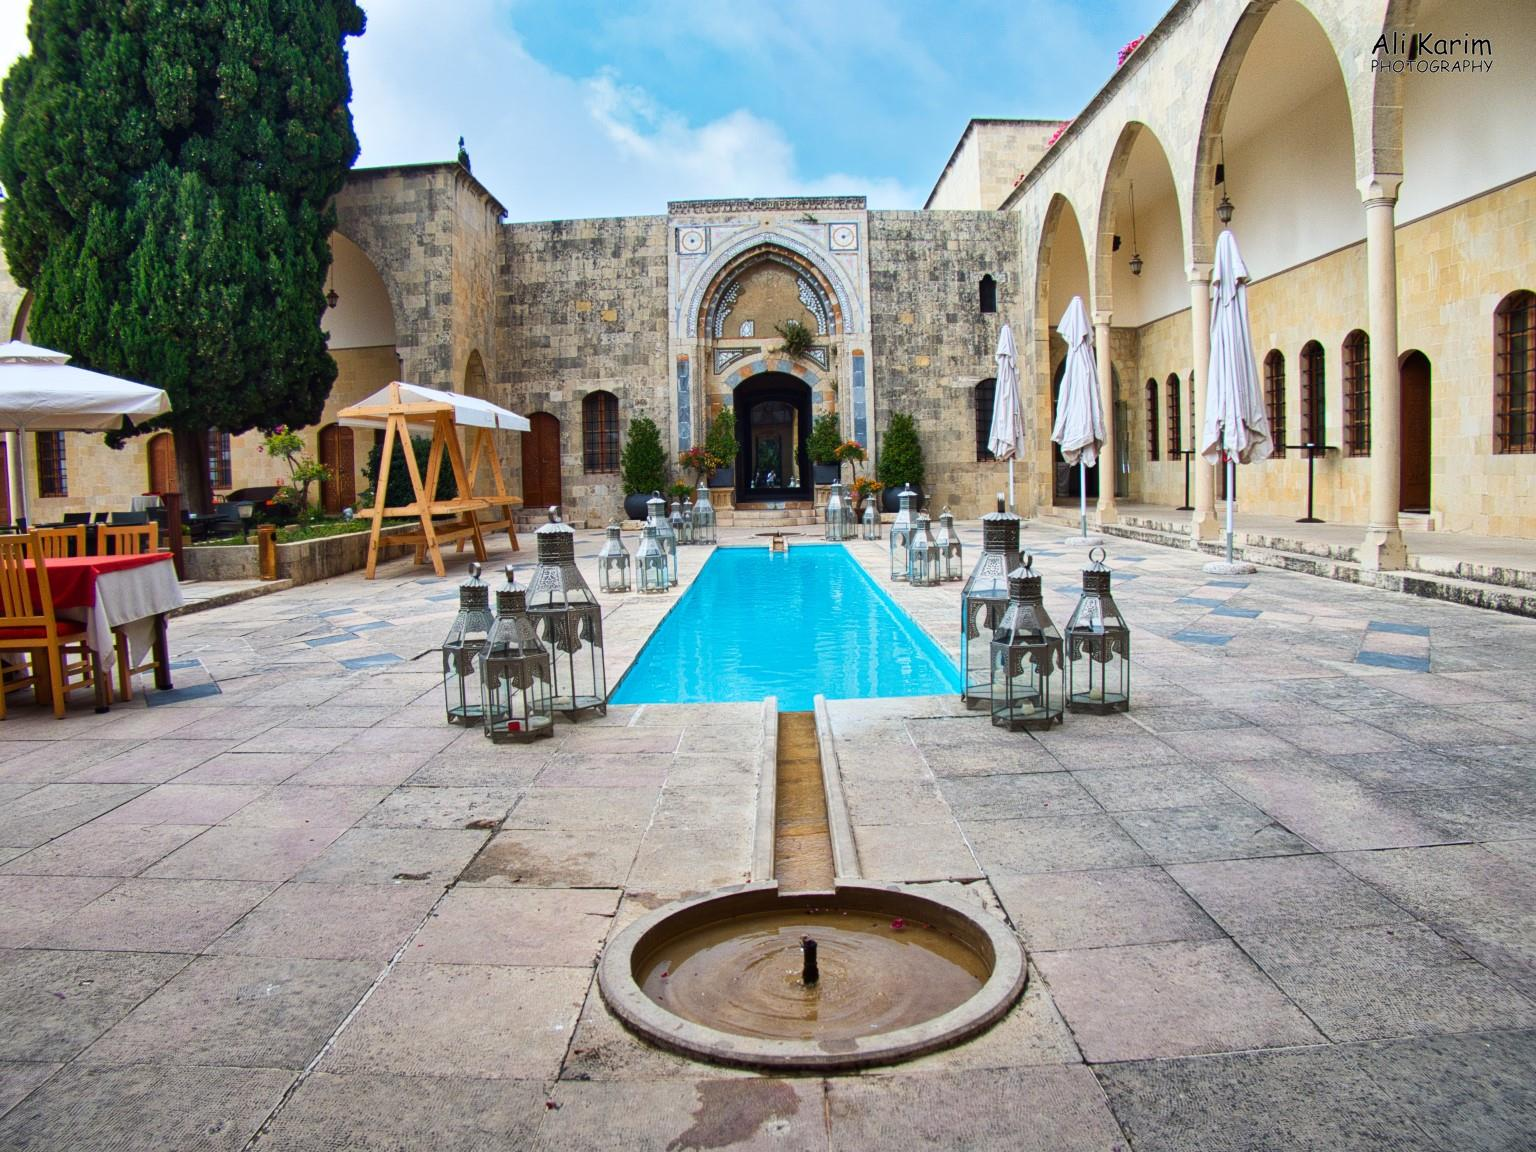 Druze and the Chouf Mountains Beautiful courtyard of the Mir Amin Palace hotel, with the typical Arabic water channel pools